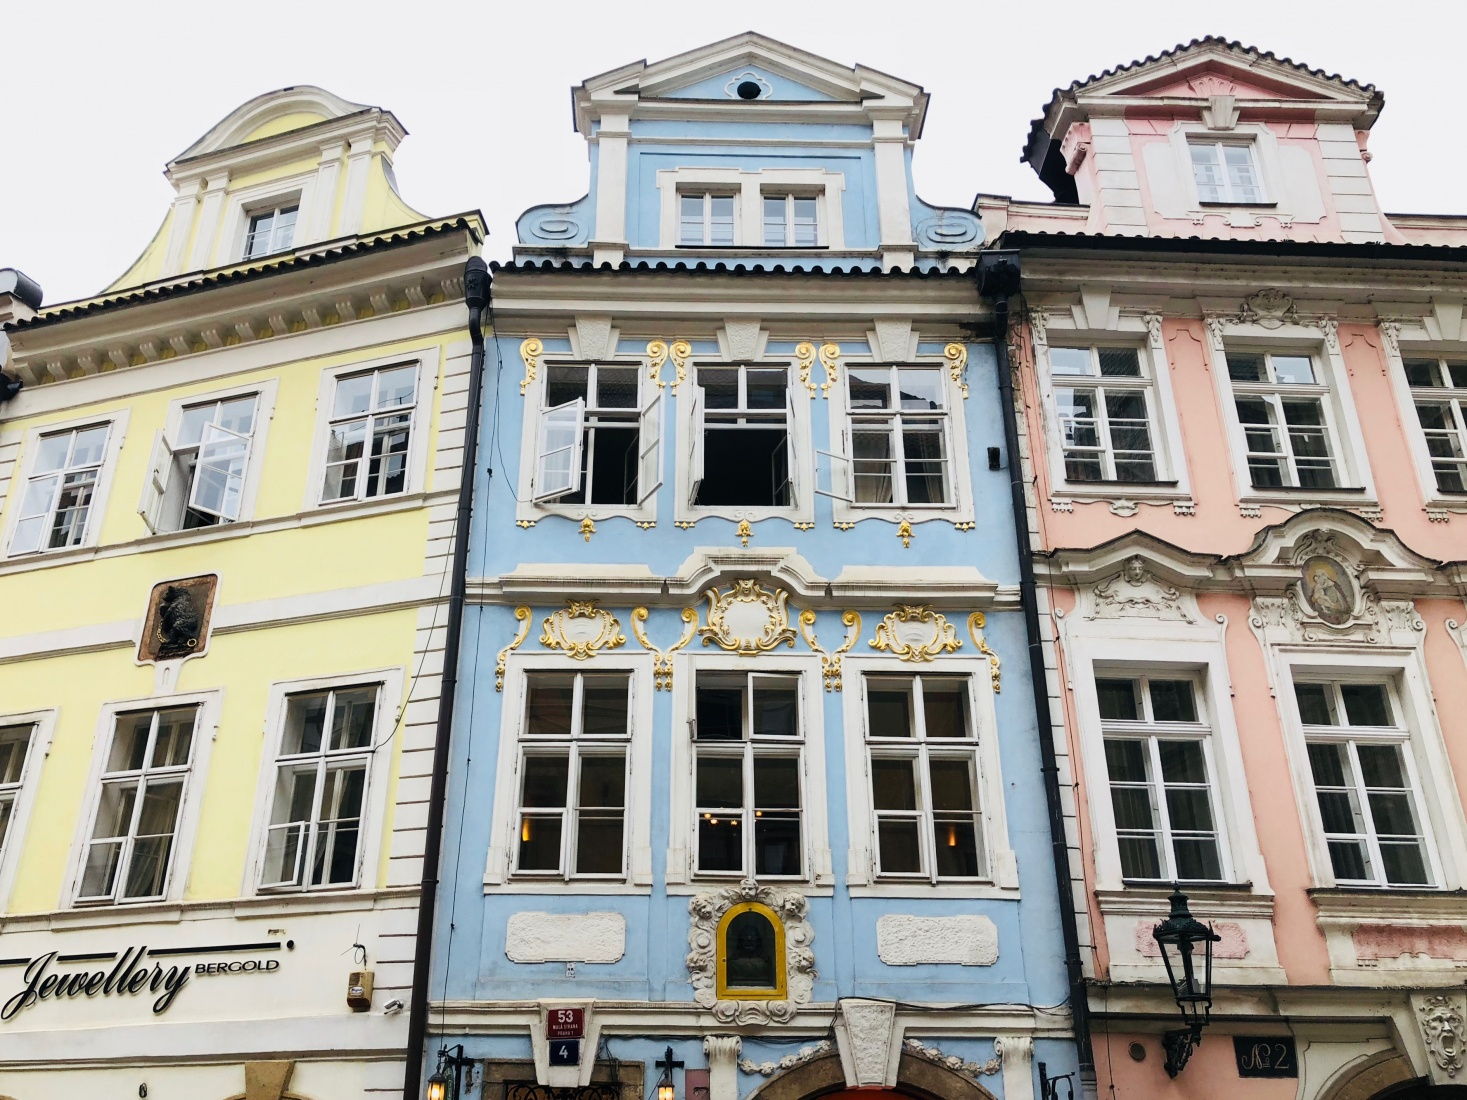 Colorful Baroque townhouse facades in Malá Strana, Prague Lesser Town, on the street that leads to Charles Bridge.